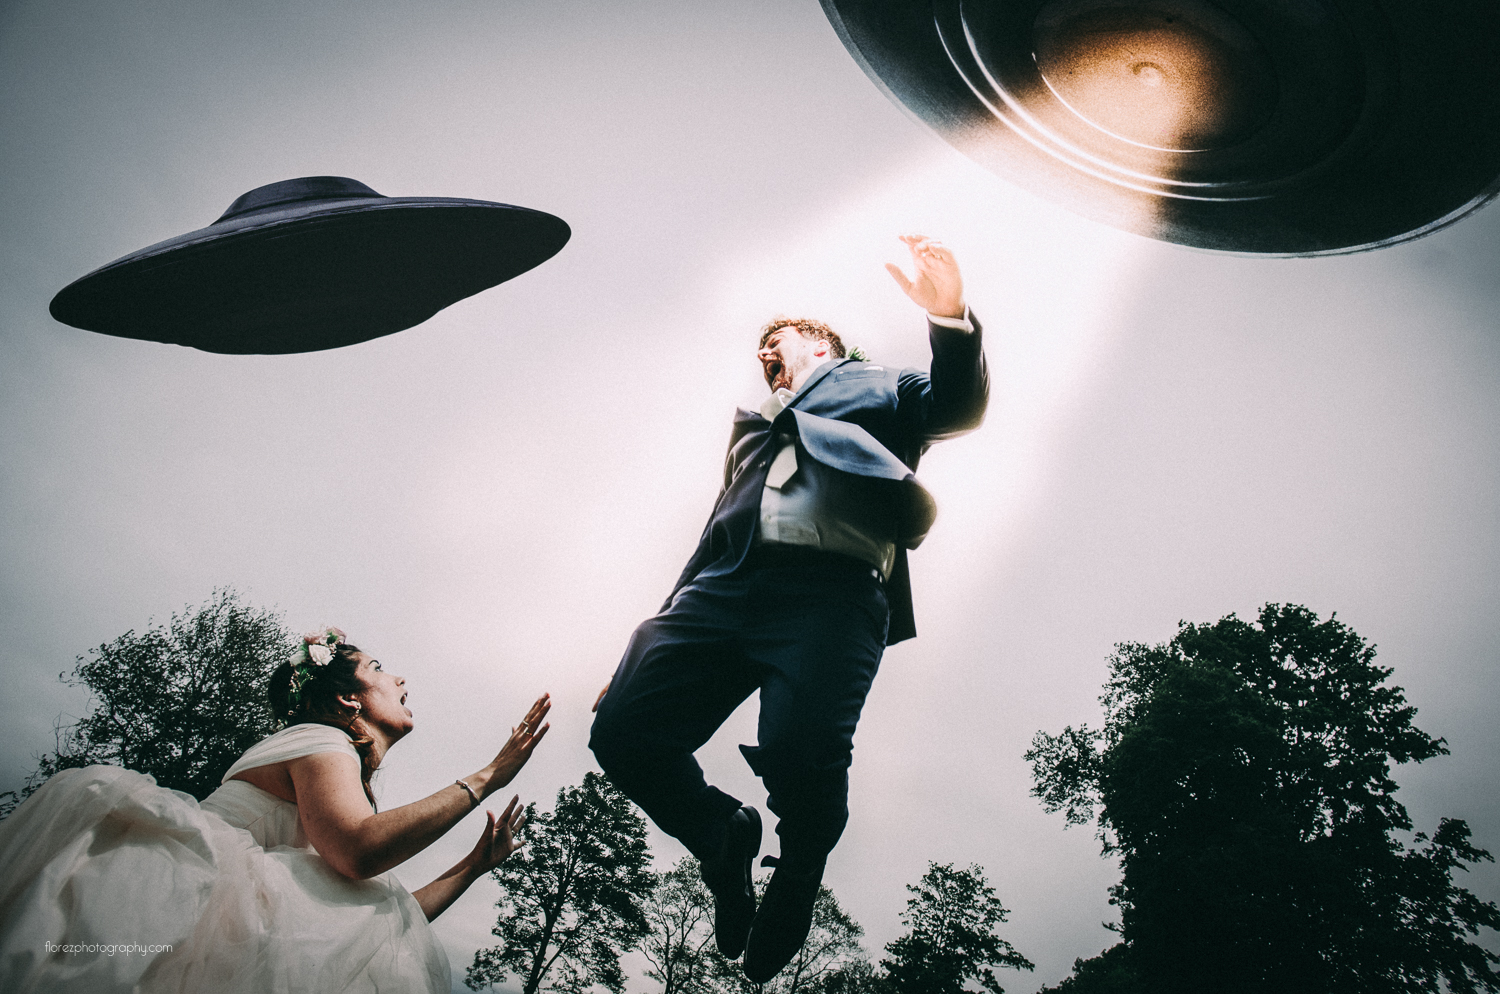 Wedding photo or low budget science fiction movie still?